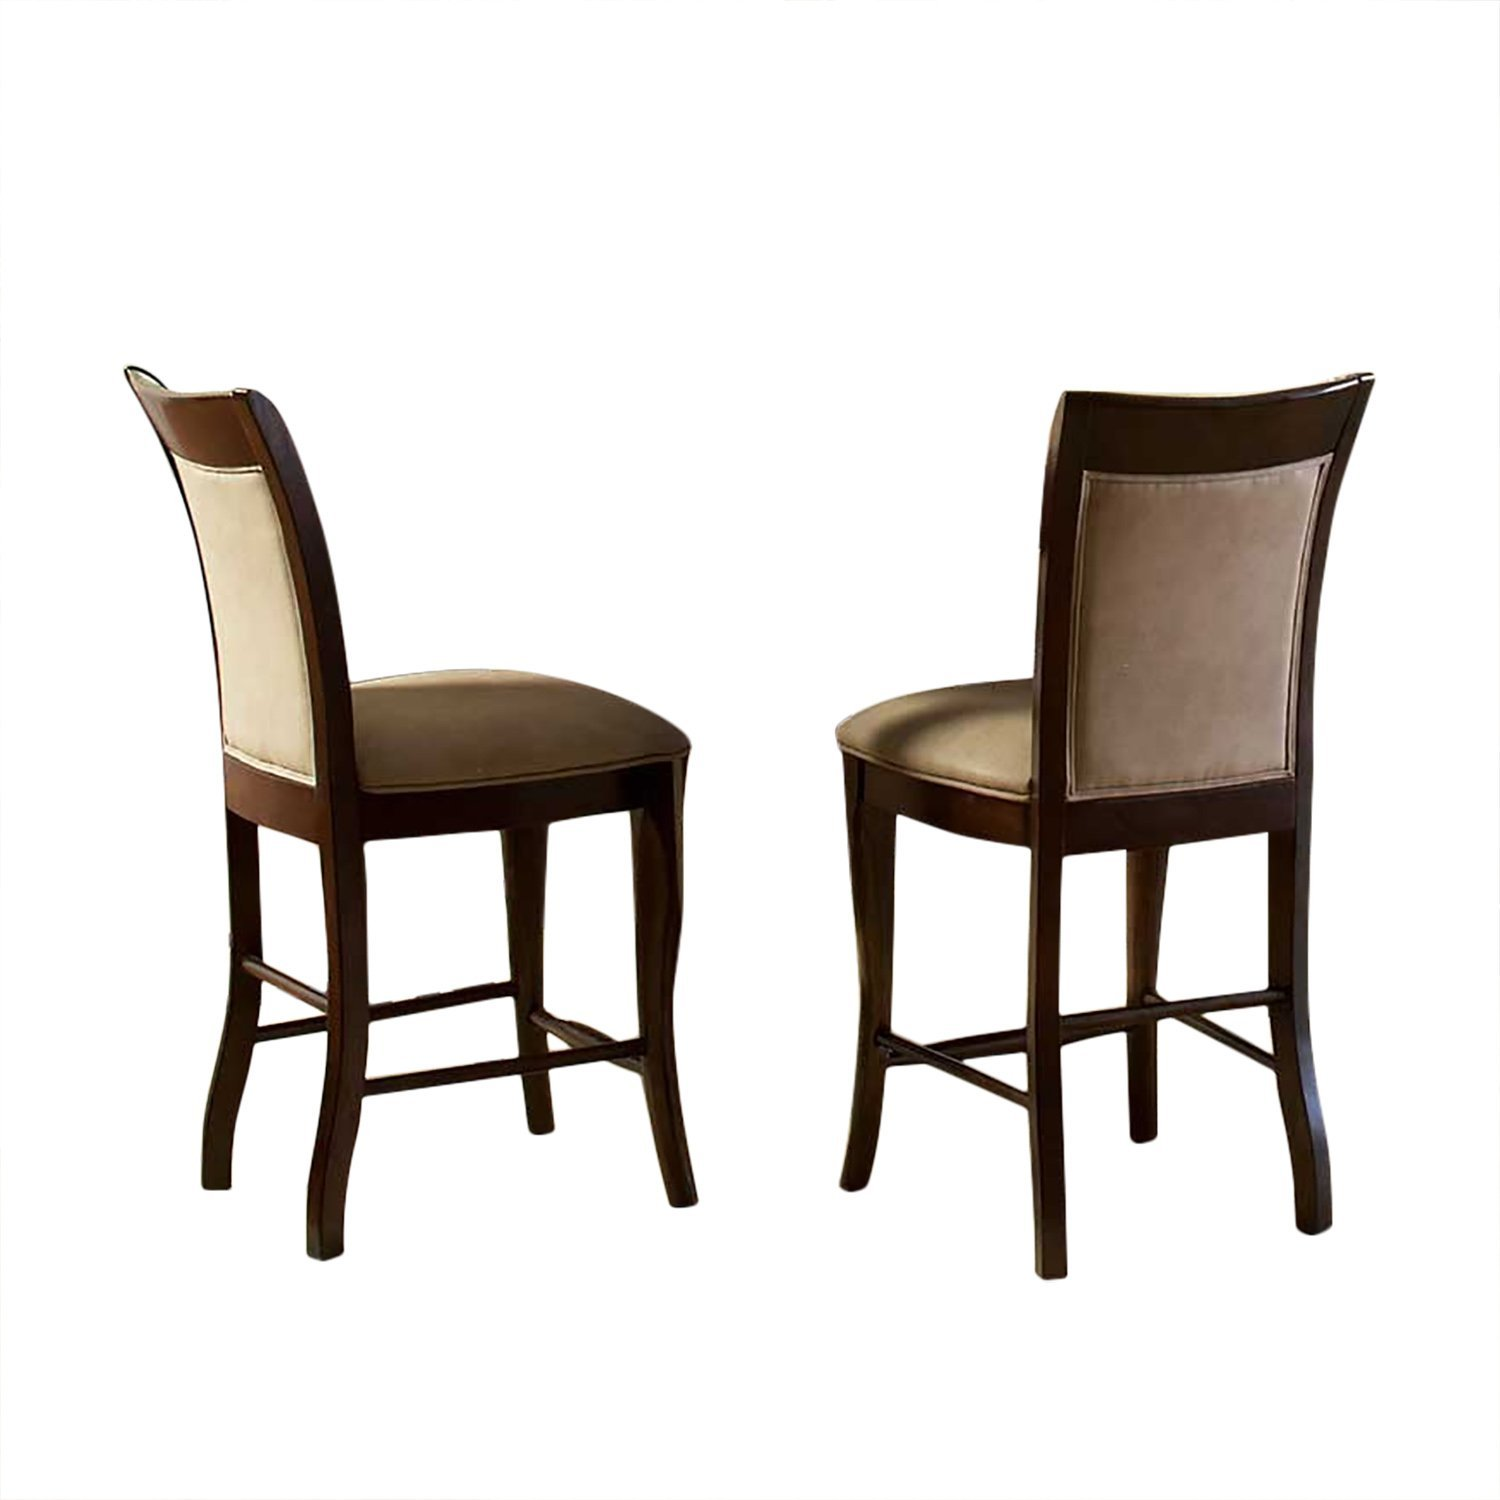 Steve Silver Company Marseille Counter Chair Set of 2